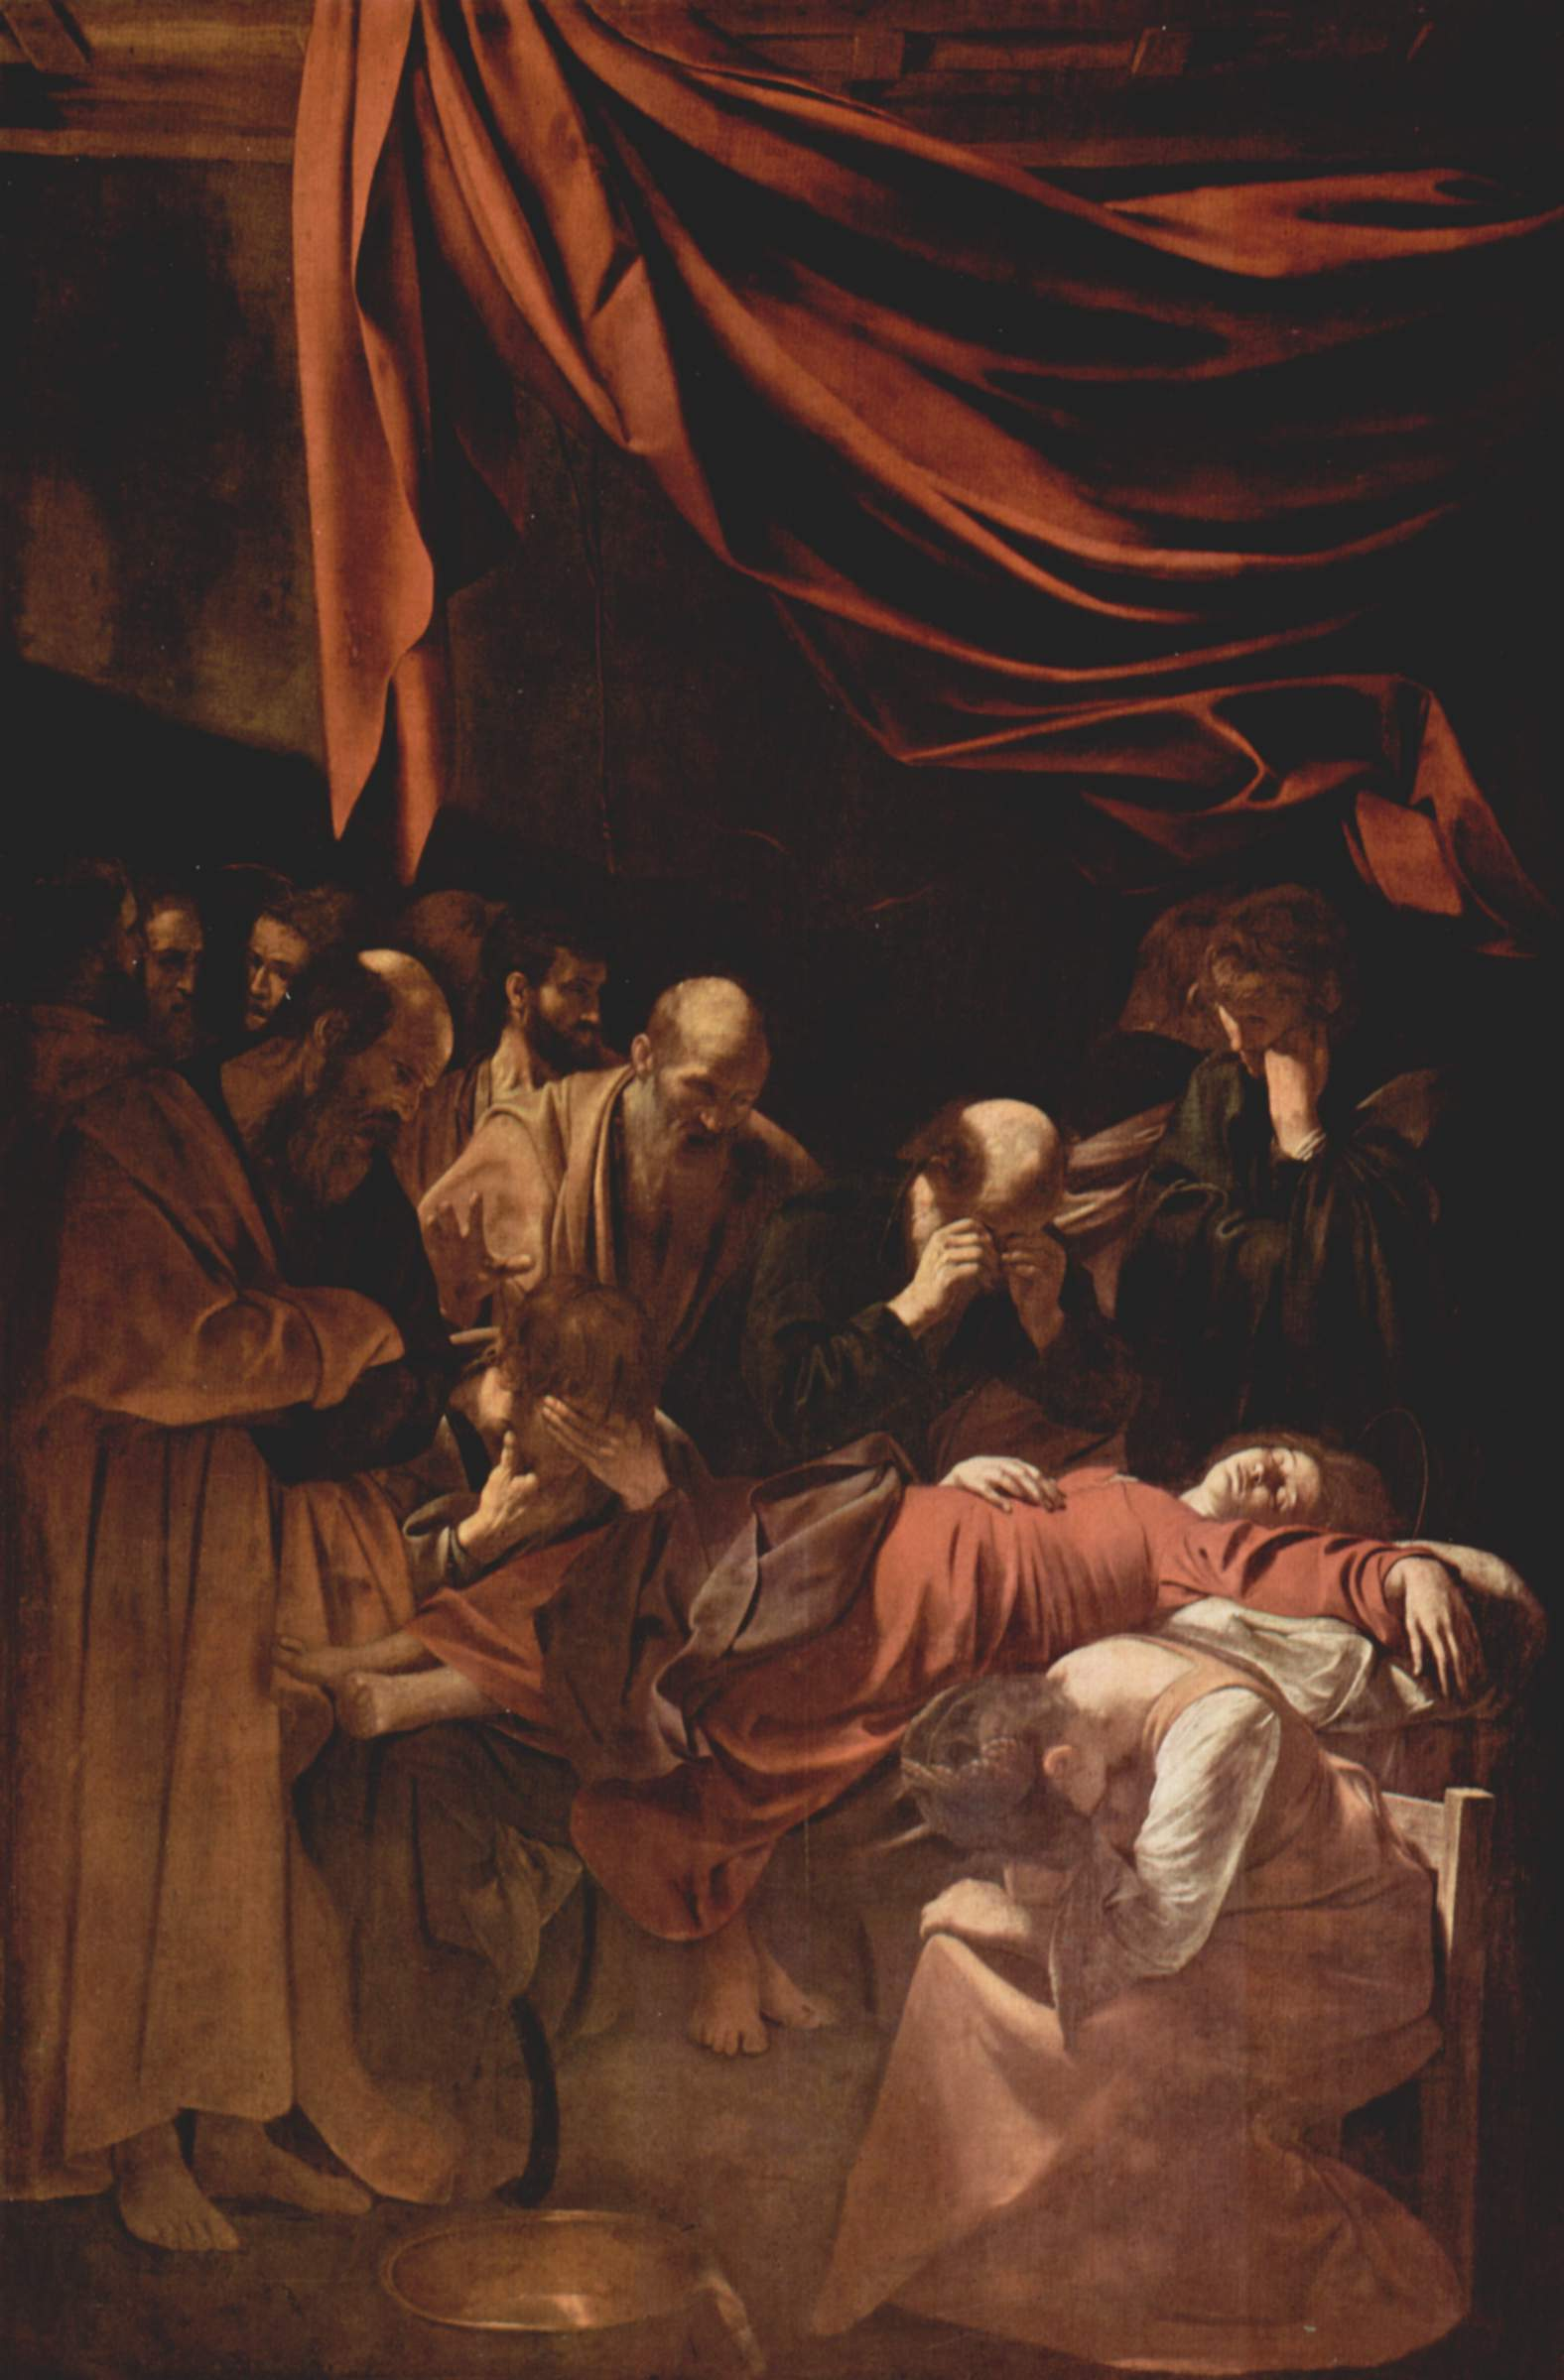 Resultado de imagen de death of the virgin caravaggio